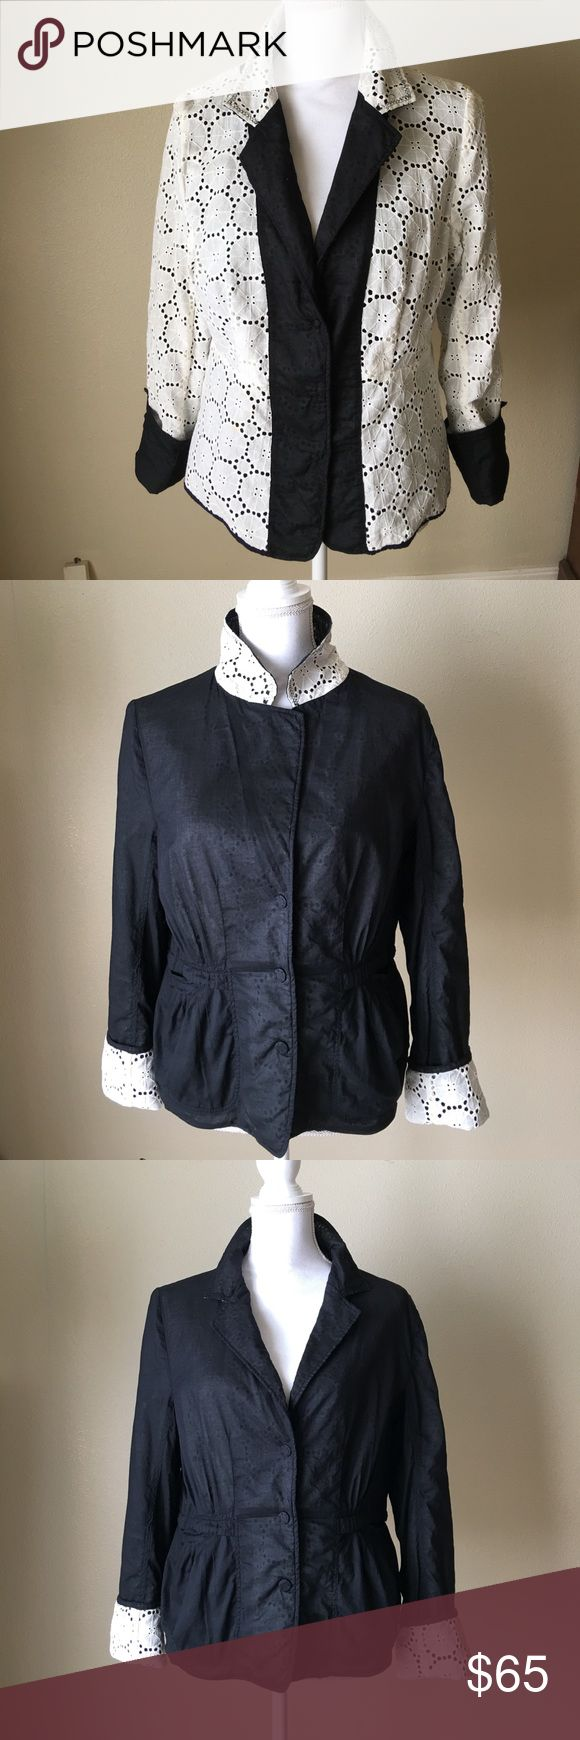 Tahari Shirt Jacket Reverses Ecru Lace to Black This was one of my favorite items when I was a size 8.  The jacket can be reversed from black with lace cuffs to ecru lace with black placard & cuffs. Snap closing placard & cuffs. Works for use as a Mandrin or lapel collar. Tahari Tops Blouses